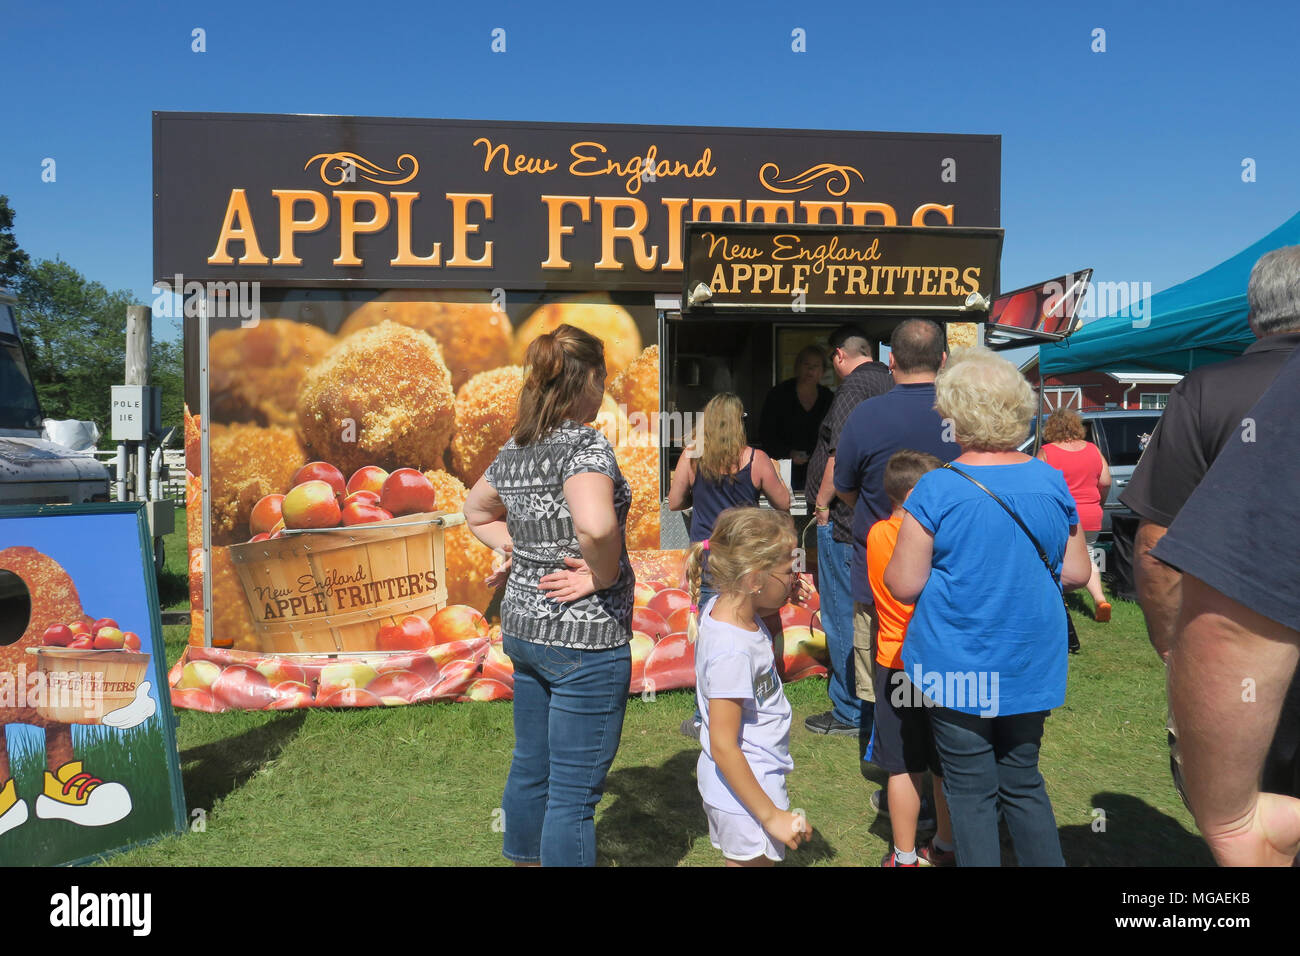 Customers lined up for Apple fritters and a local Connecticut food festival - Stock Image